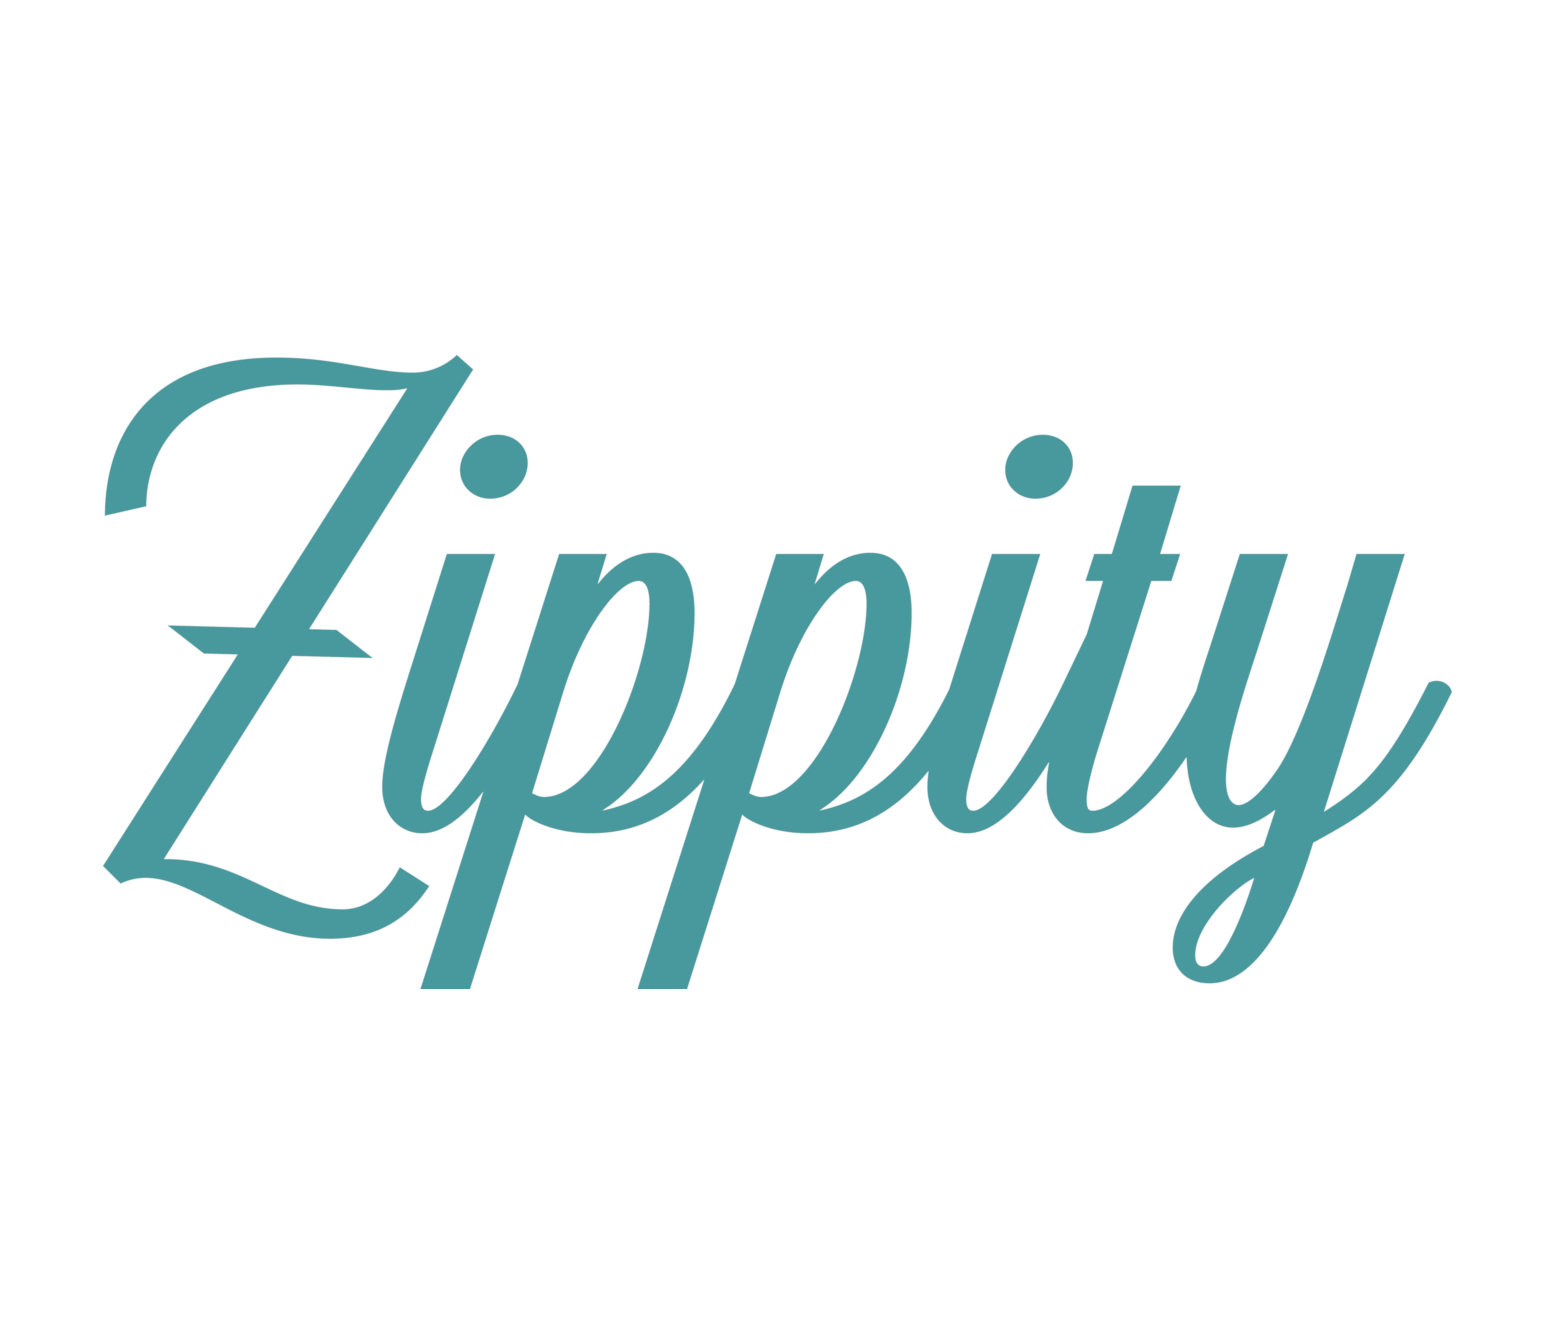 Zippity provides hassle-free car maintenance at your workplace.